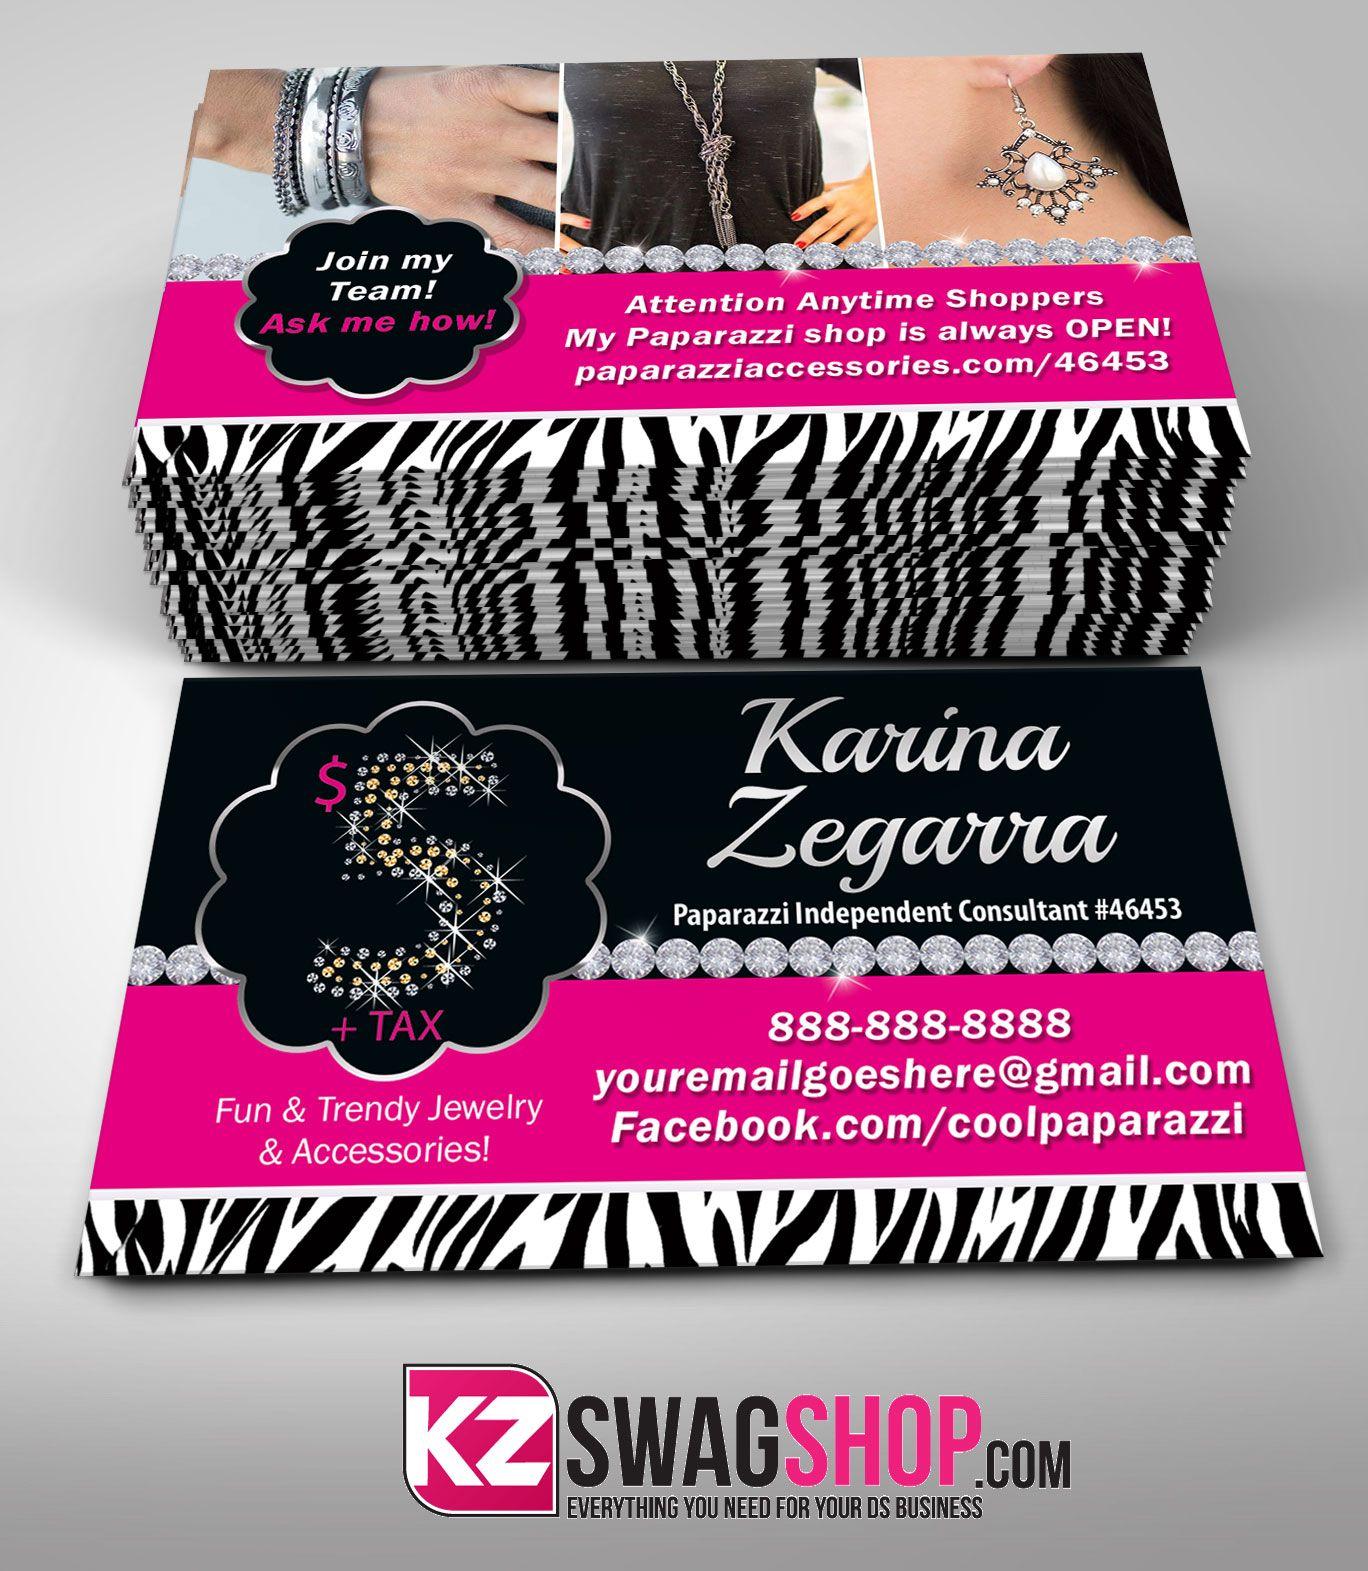 Paparazzi business cards style from kz creative services